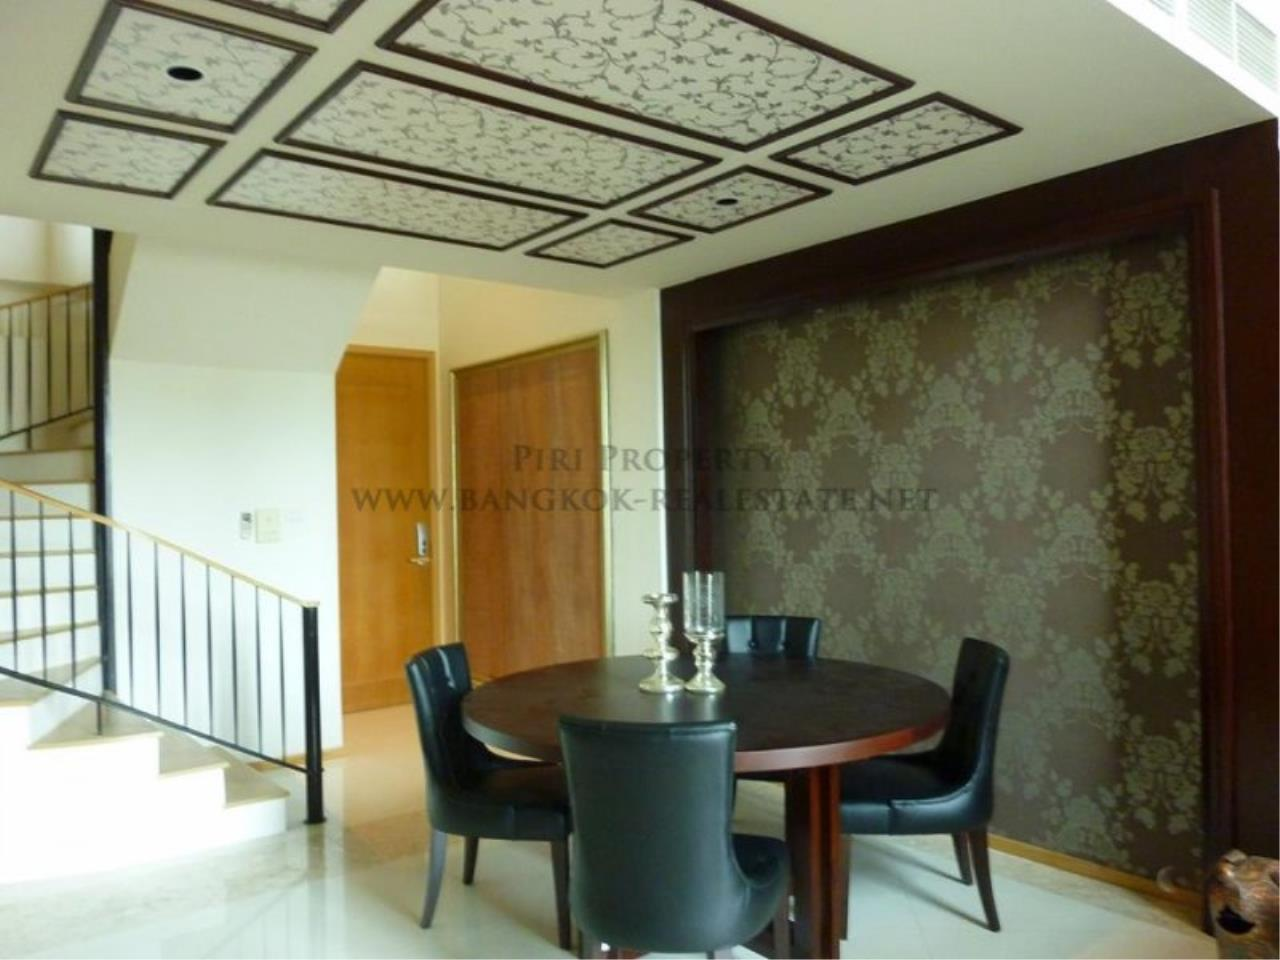 Piri Property Agency's Exclusive Duplex Condo in Sathorn - 2 Bedroom Condo for Rent 3